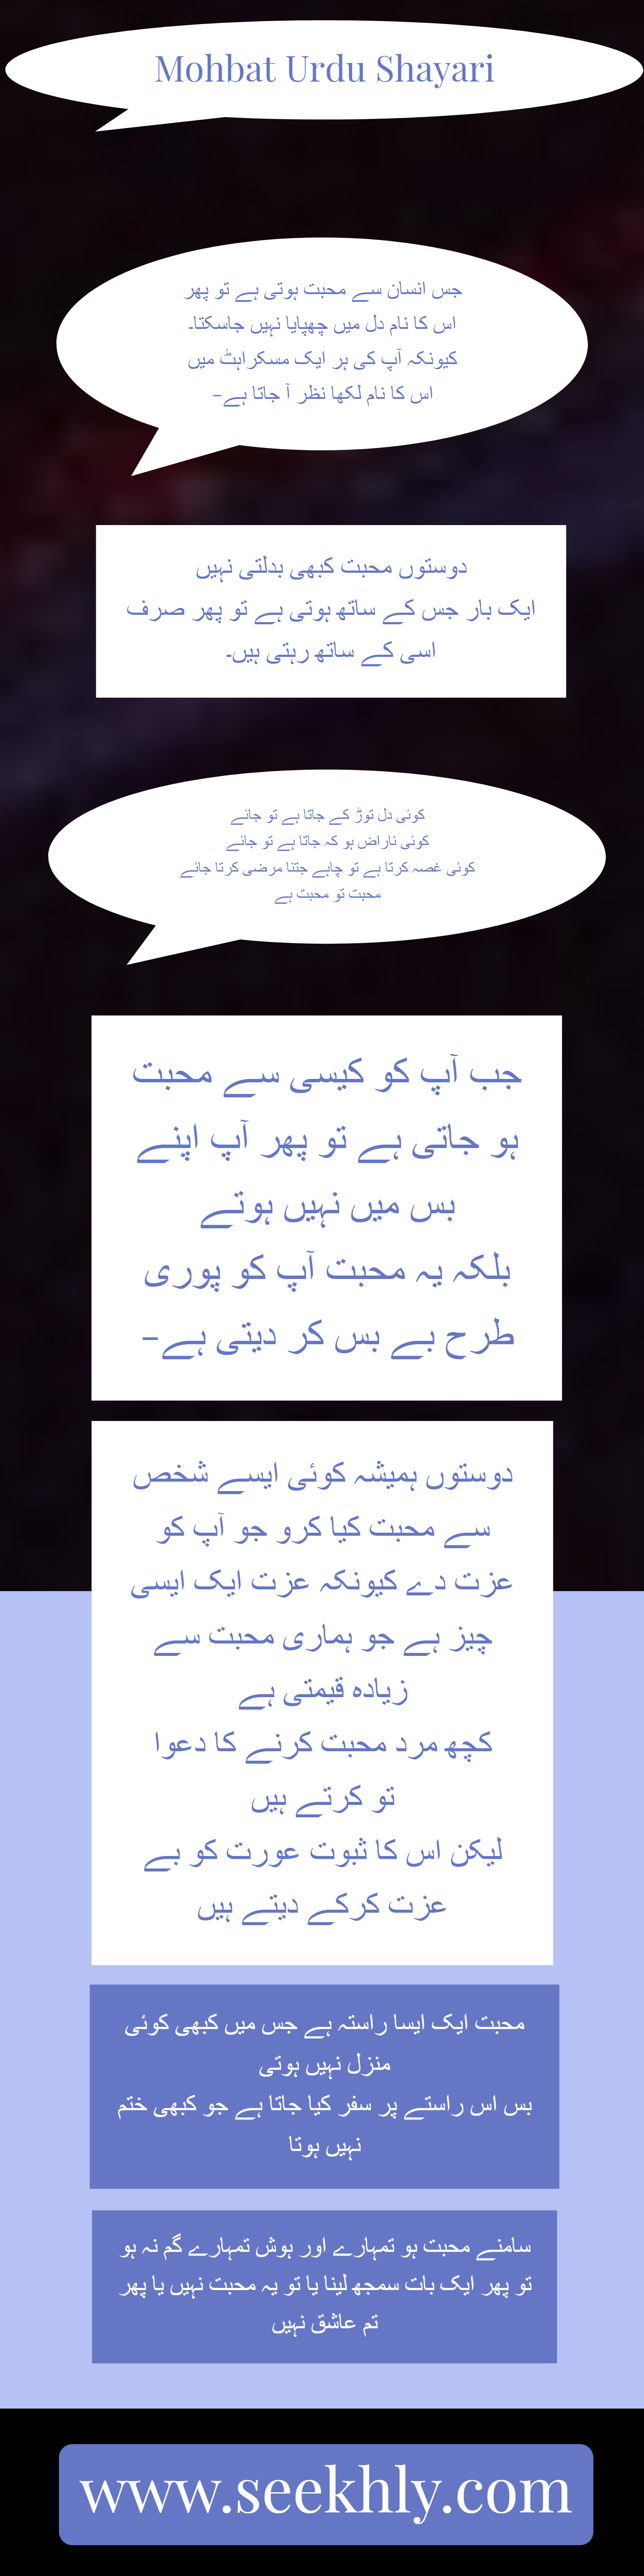 infographic, love poetry in urdu, urdu shayari. urdu quotes, urdu poetry,